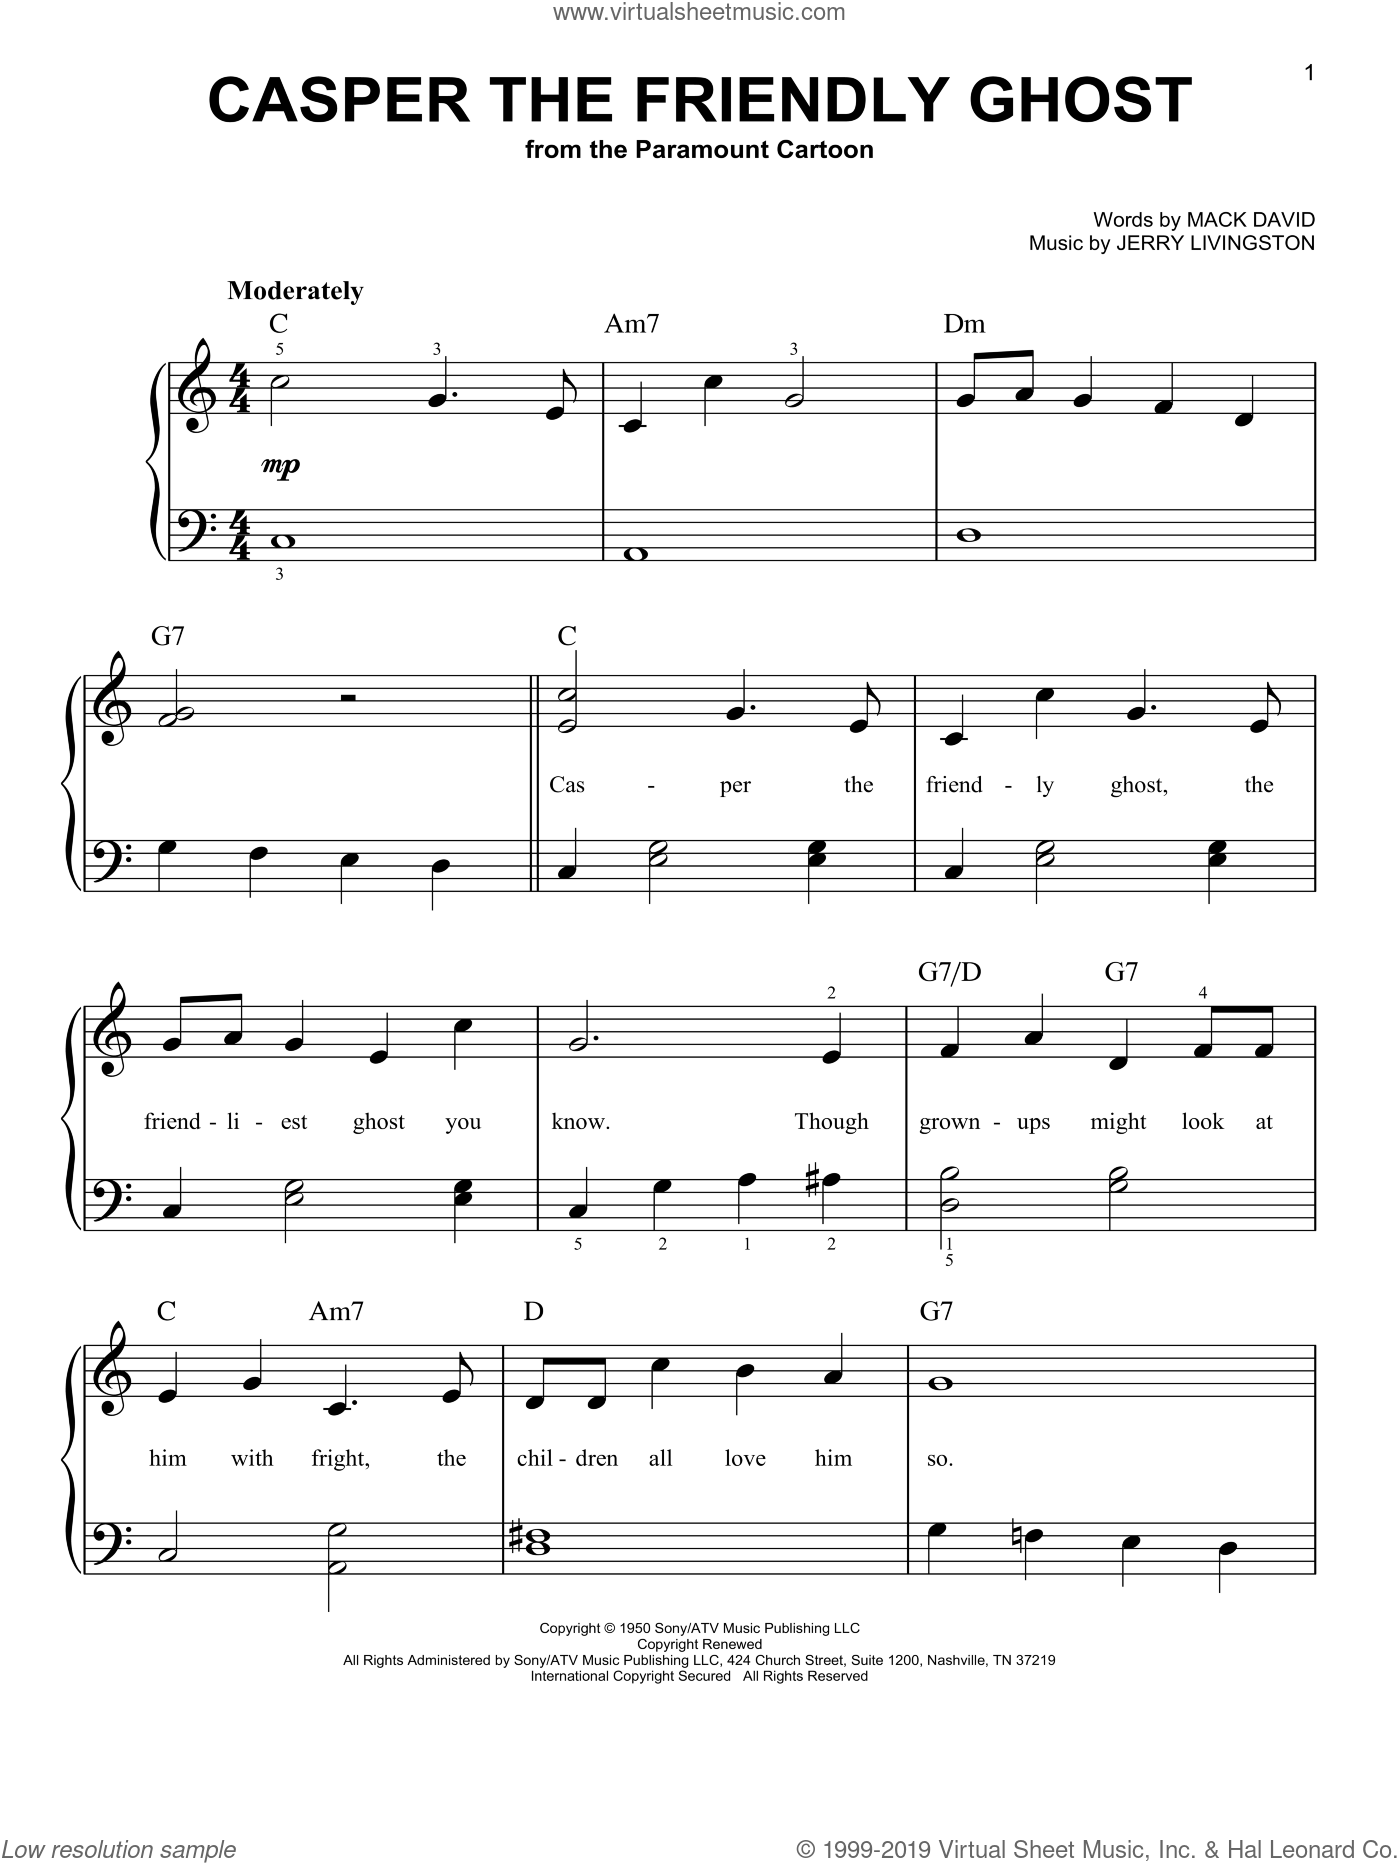 Casper The Friendly Ghost sheet music for piano solo by Mack David and Jerry Livingston. Score Image Preview.